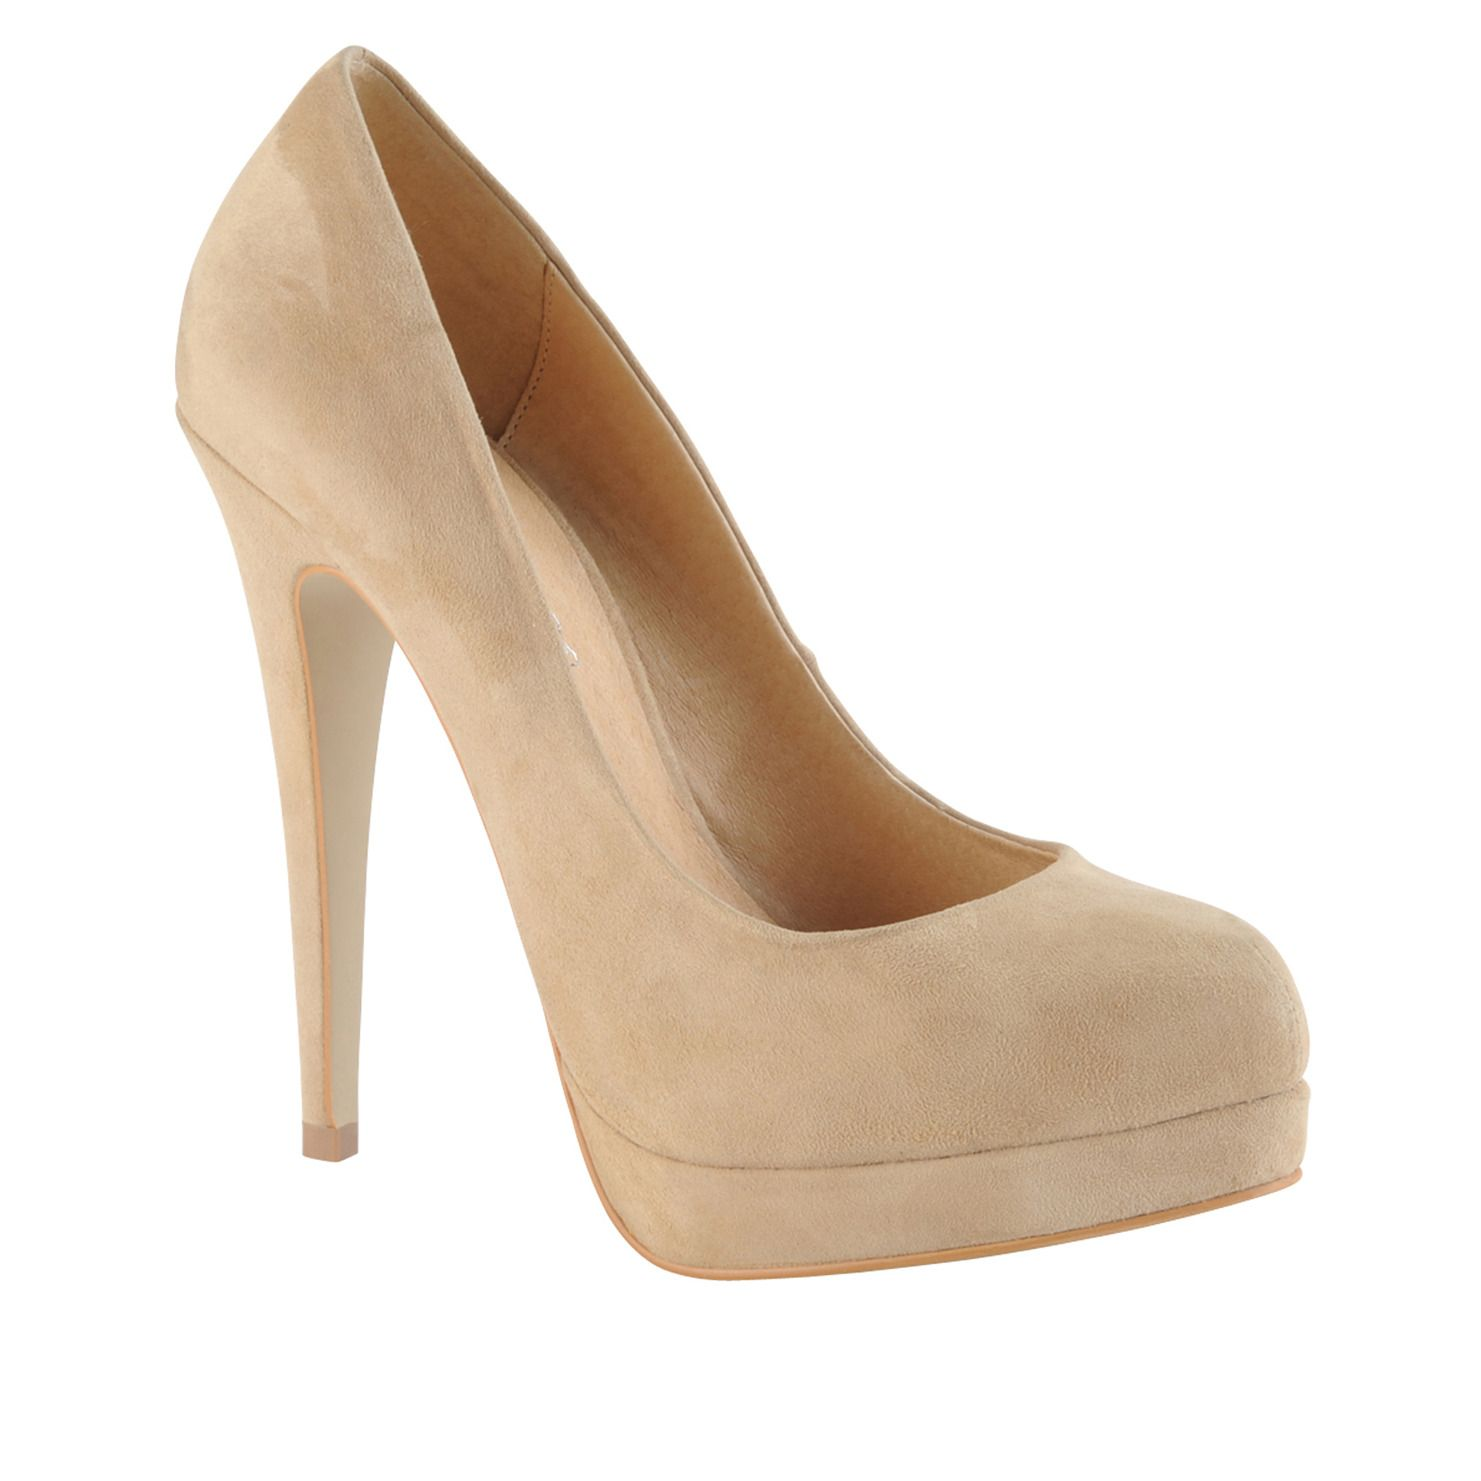 c46b32d26 Aldo nude shoe - wear with anything..need these since mine were chewed up  by the dog!!!